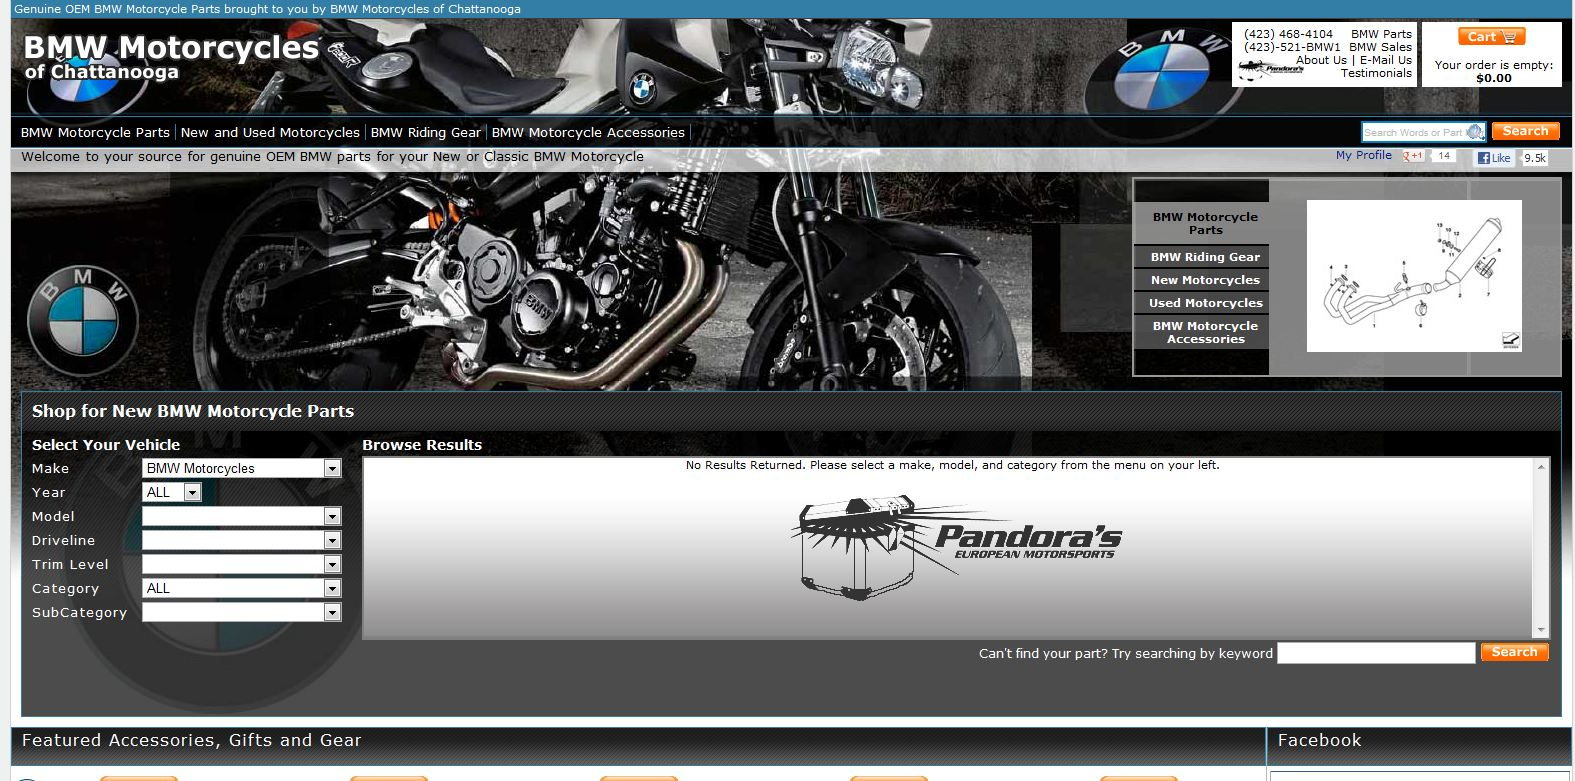 bmw motorcycles of chattanooga rated 4/5 stars65 consumers